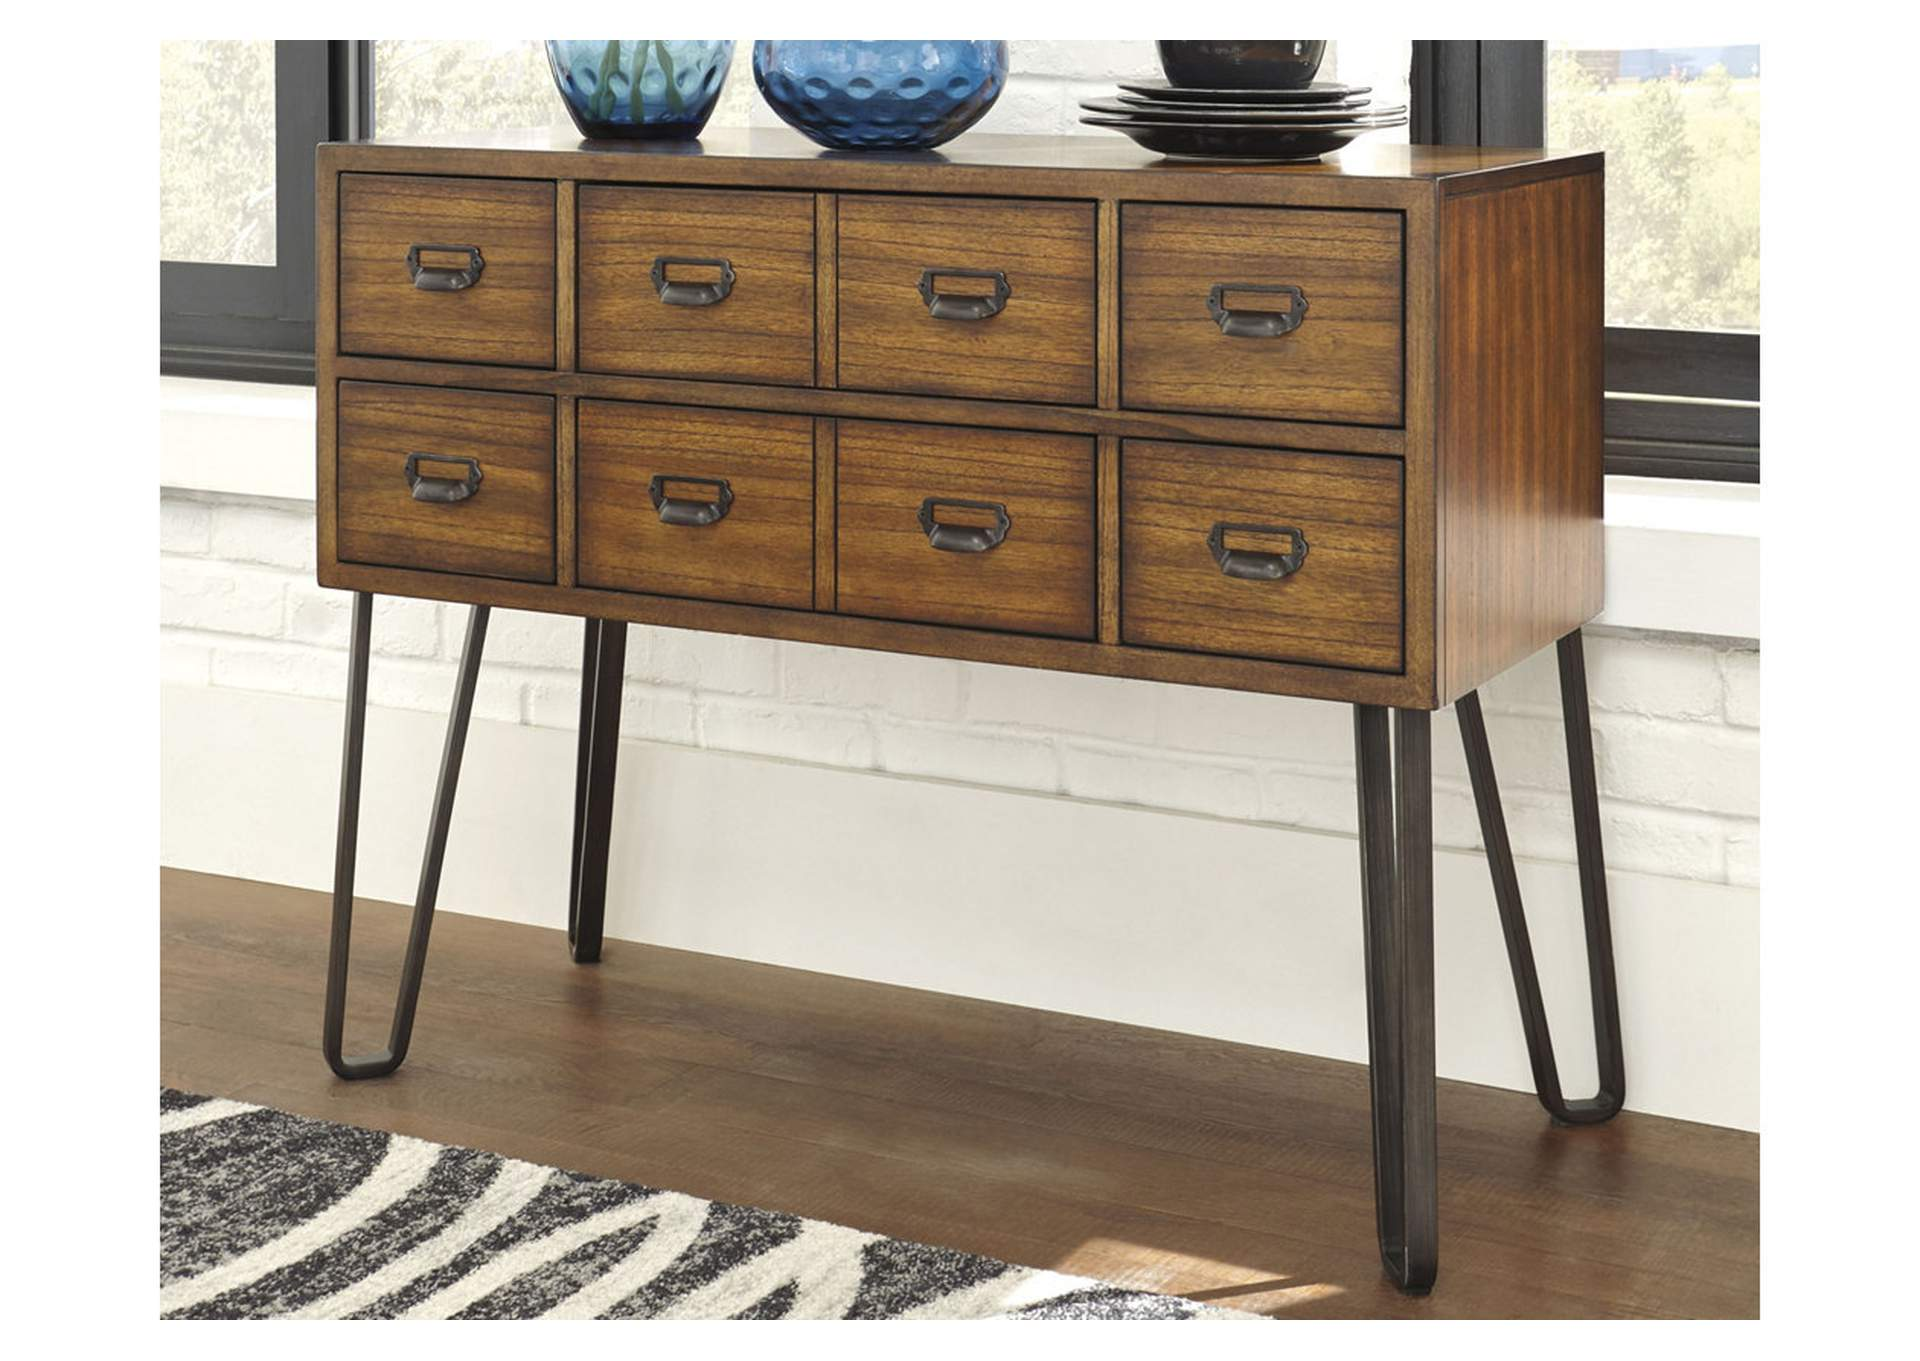 Centiar Two-tone Brown Dining Room Server,Signature Design By Ashley